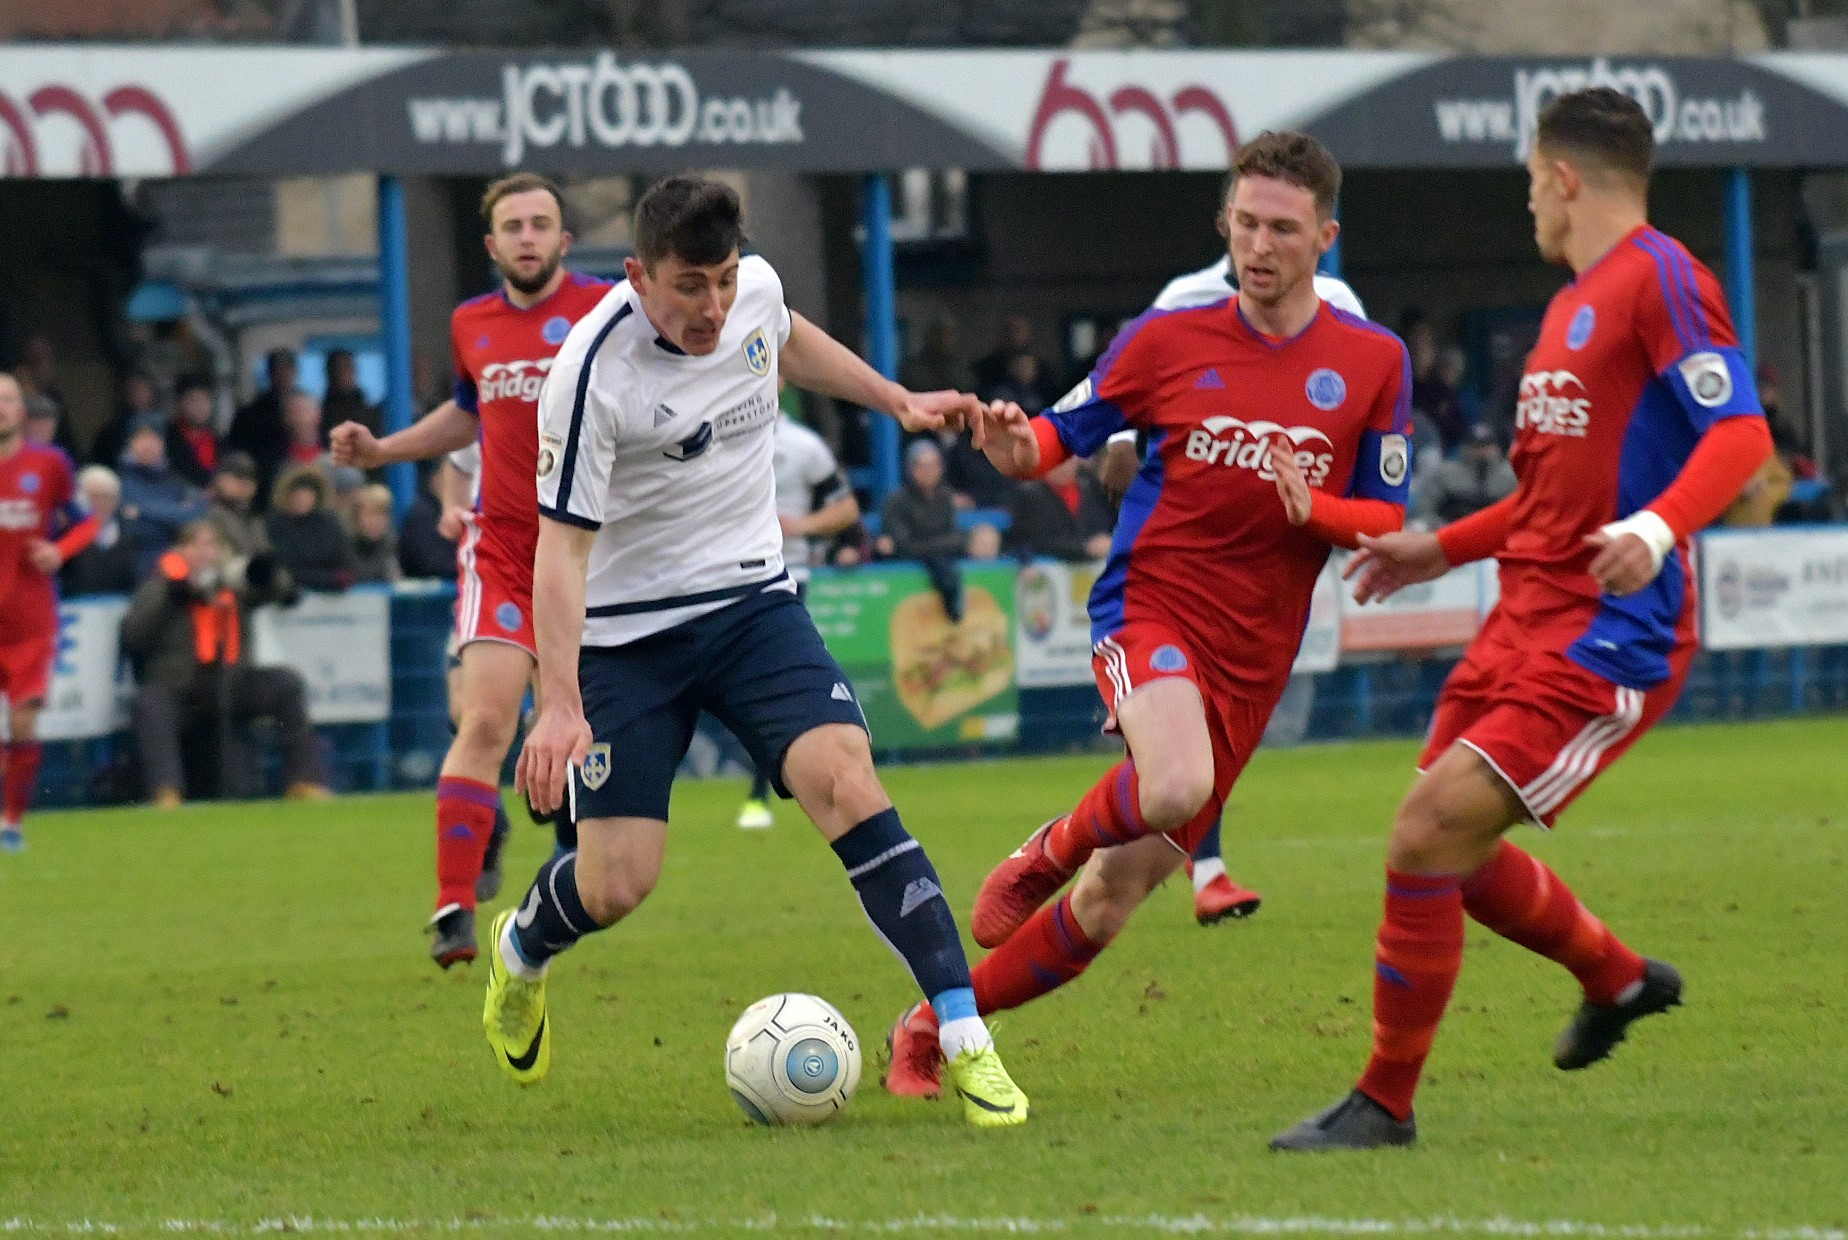 James Roberts netted his first goal for Guiseley